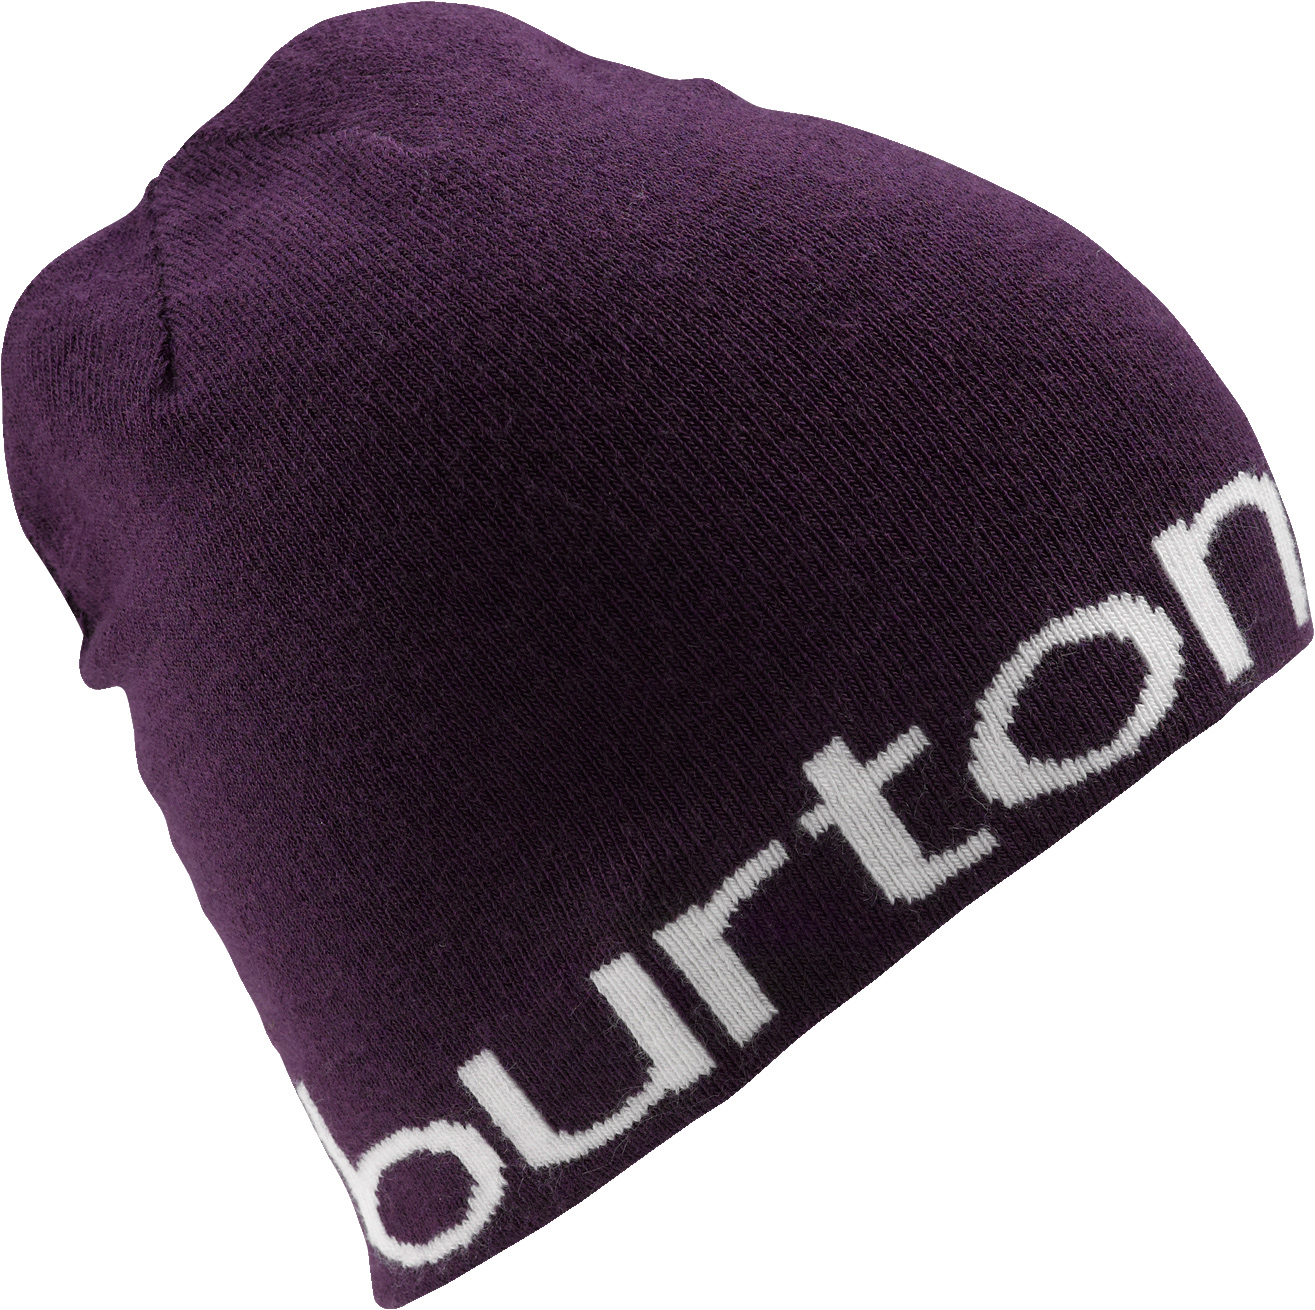 Snowboard Key Features of the Burton Up On Lights Beanie: 100% Acrylic Reversible Word Mark Beanie Skully Fit - $25.00